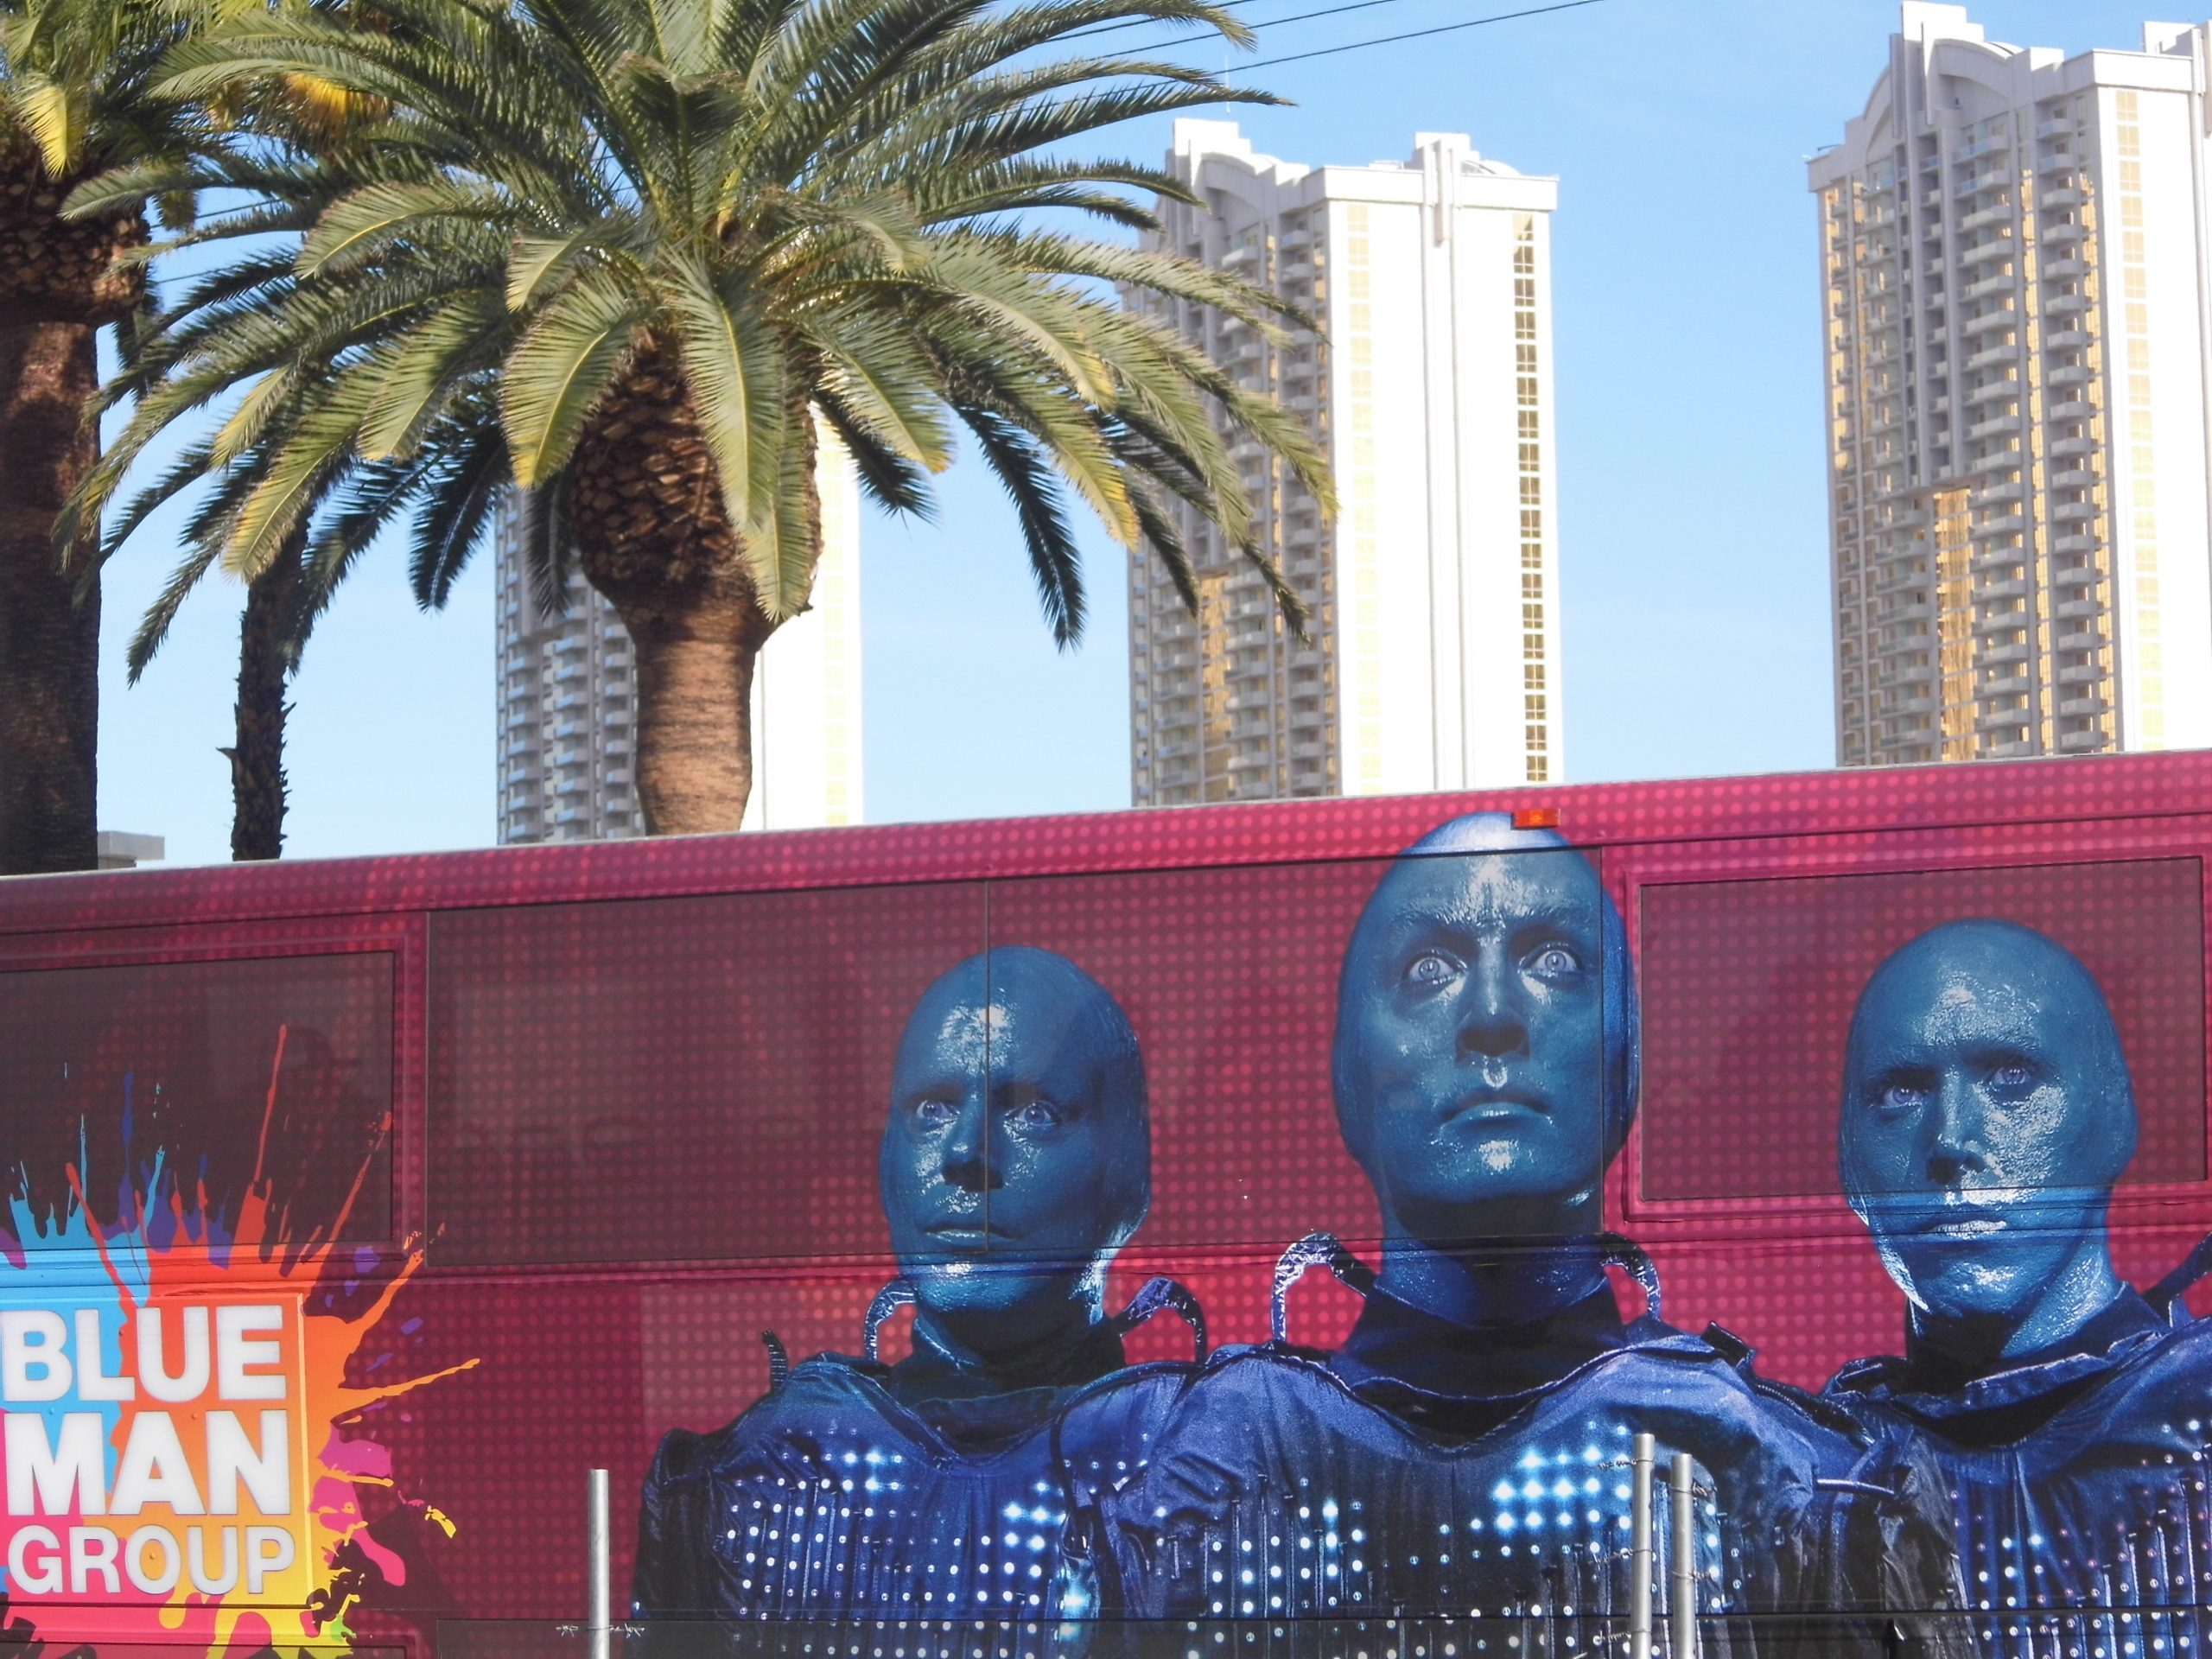 Blue Man Group Las Vegas, Blue Man Group Las Vegas 2018